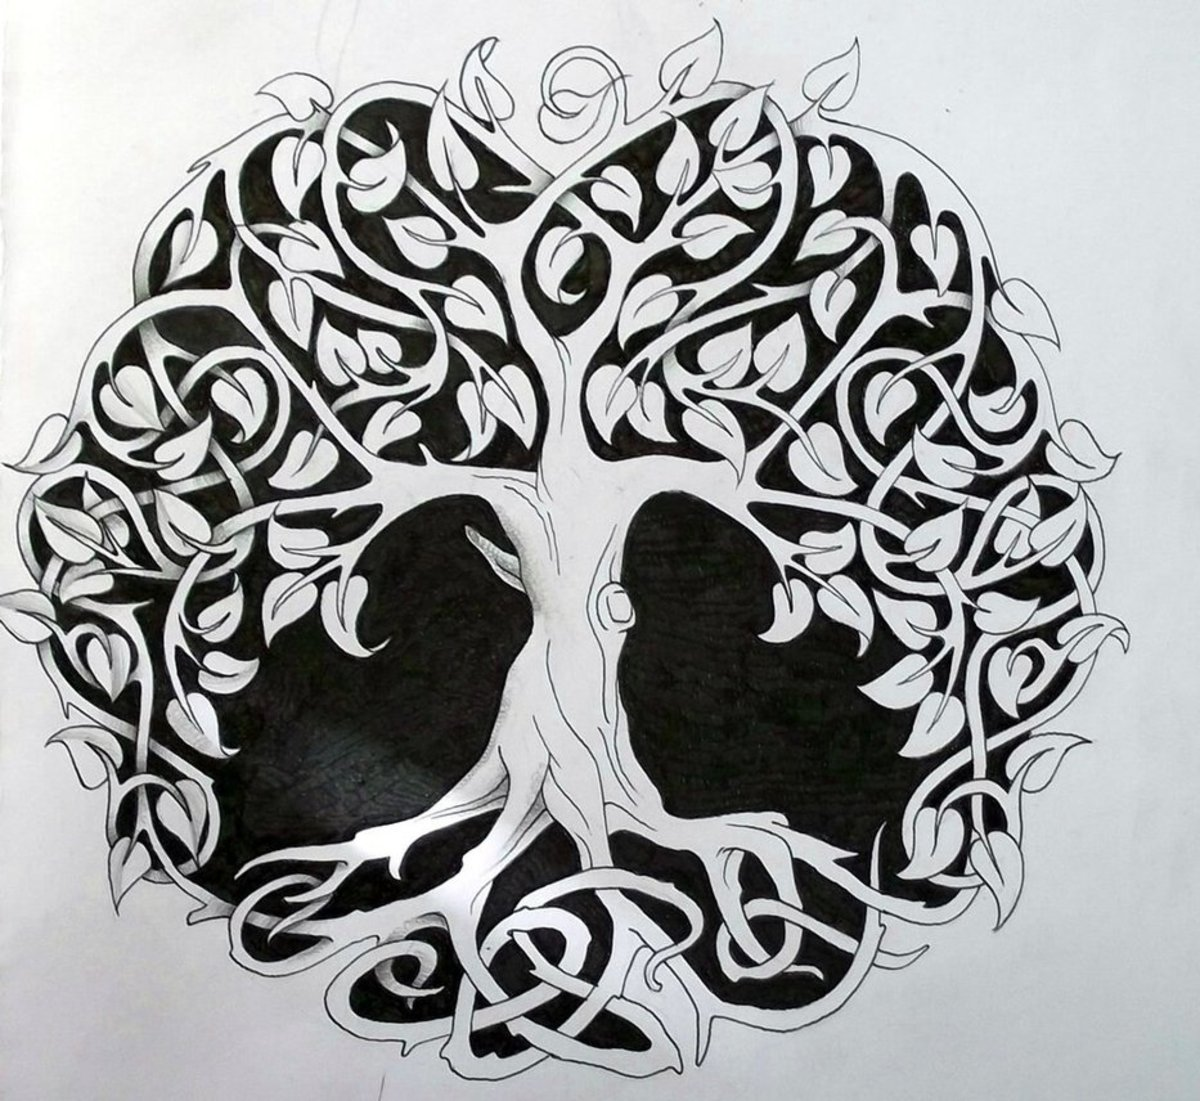 The Celts' Tree of Life - similar to the Norse Yggdrasil, the World Ash Tree. Everything stems from the ground: life, food, tools, dwellings and new life from old.